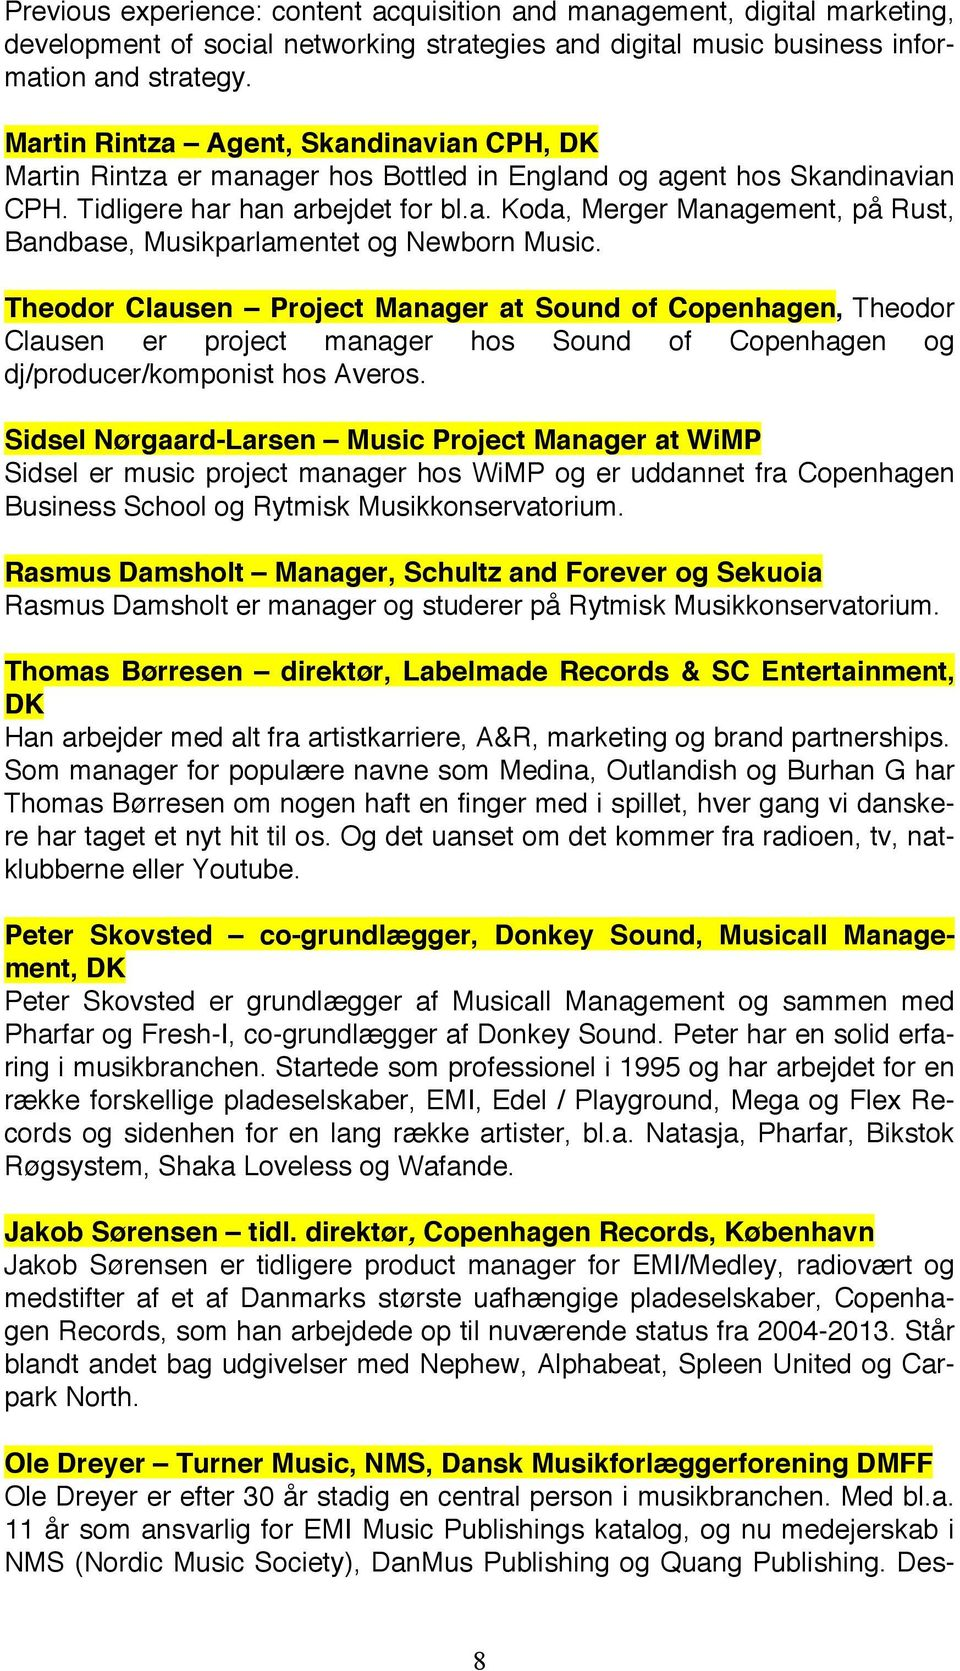 Theodor Clausen Project Manager at Sound of Copenhagen, Theodor Clausen er project manager hos Sound of Copenhagen og dj/producer/komponist hos Averos.